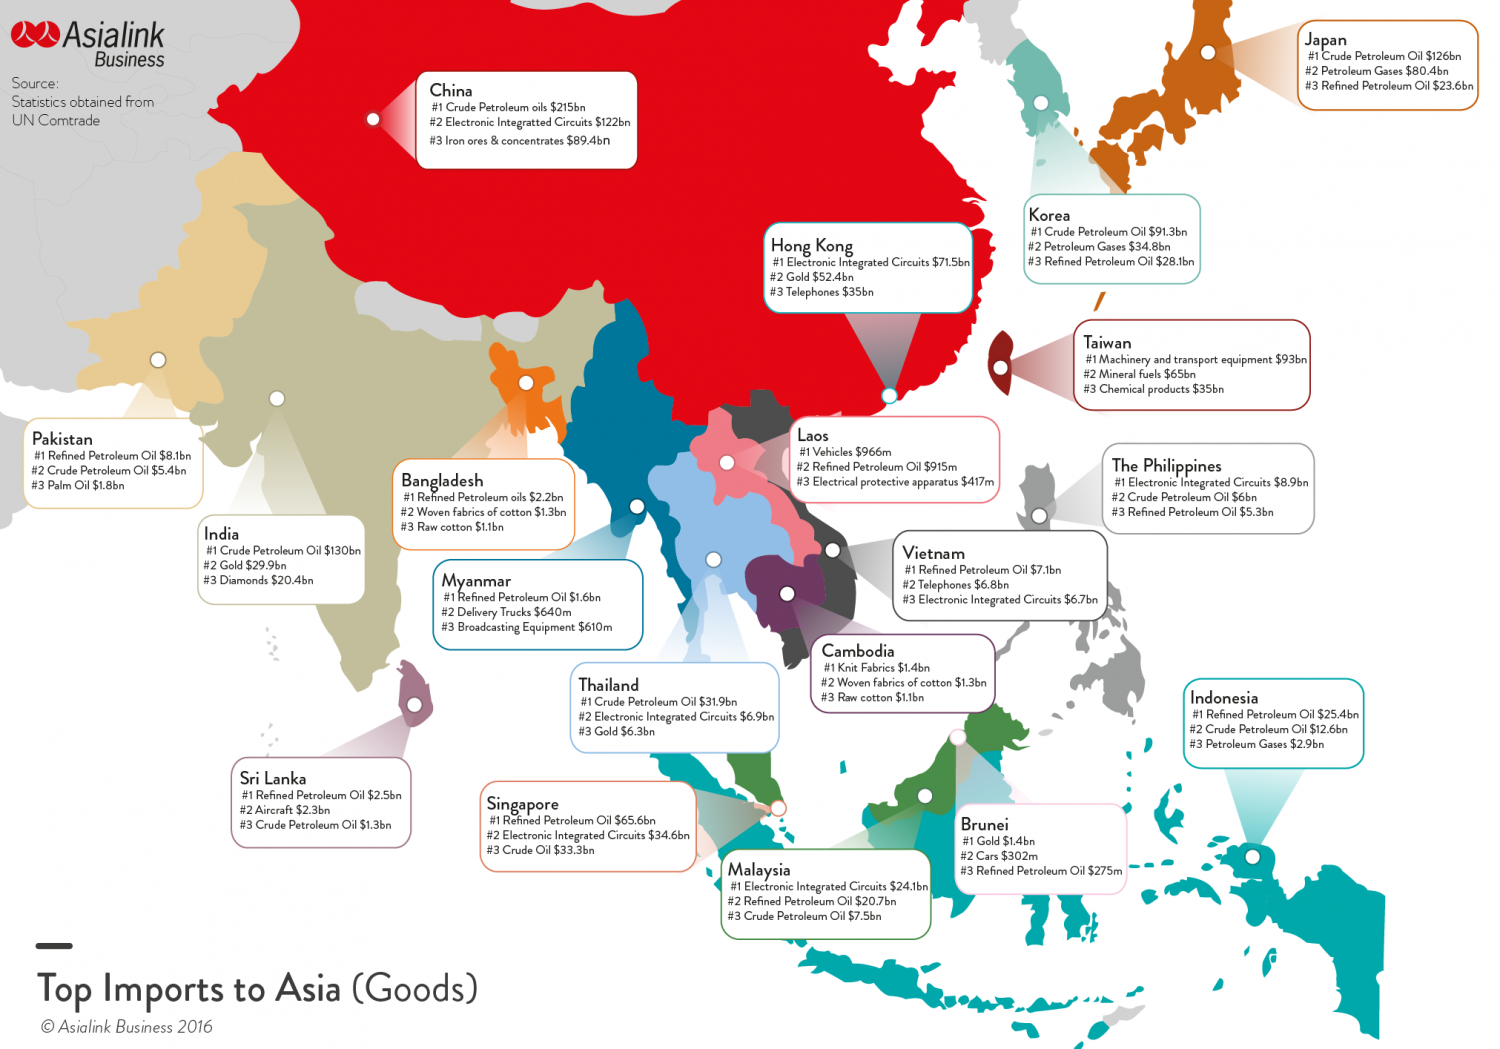 Asia's Top Imports (Goods) Infographic